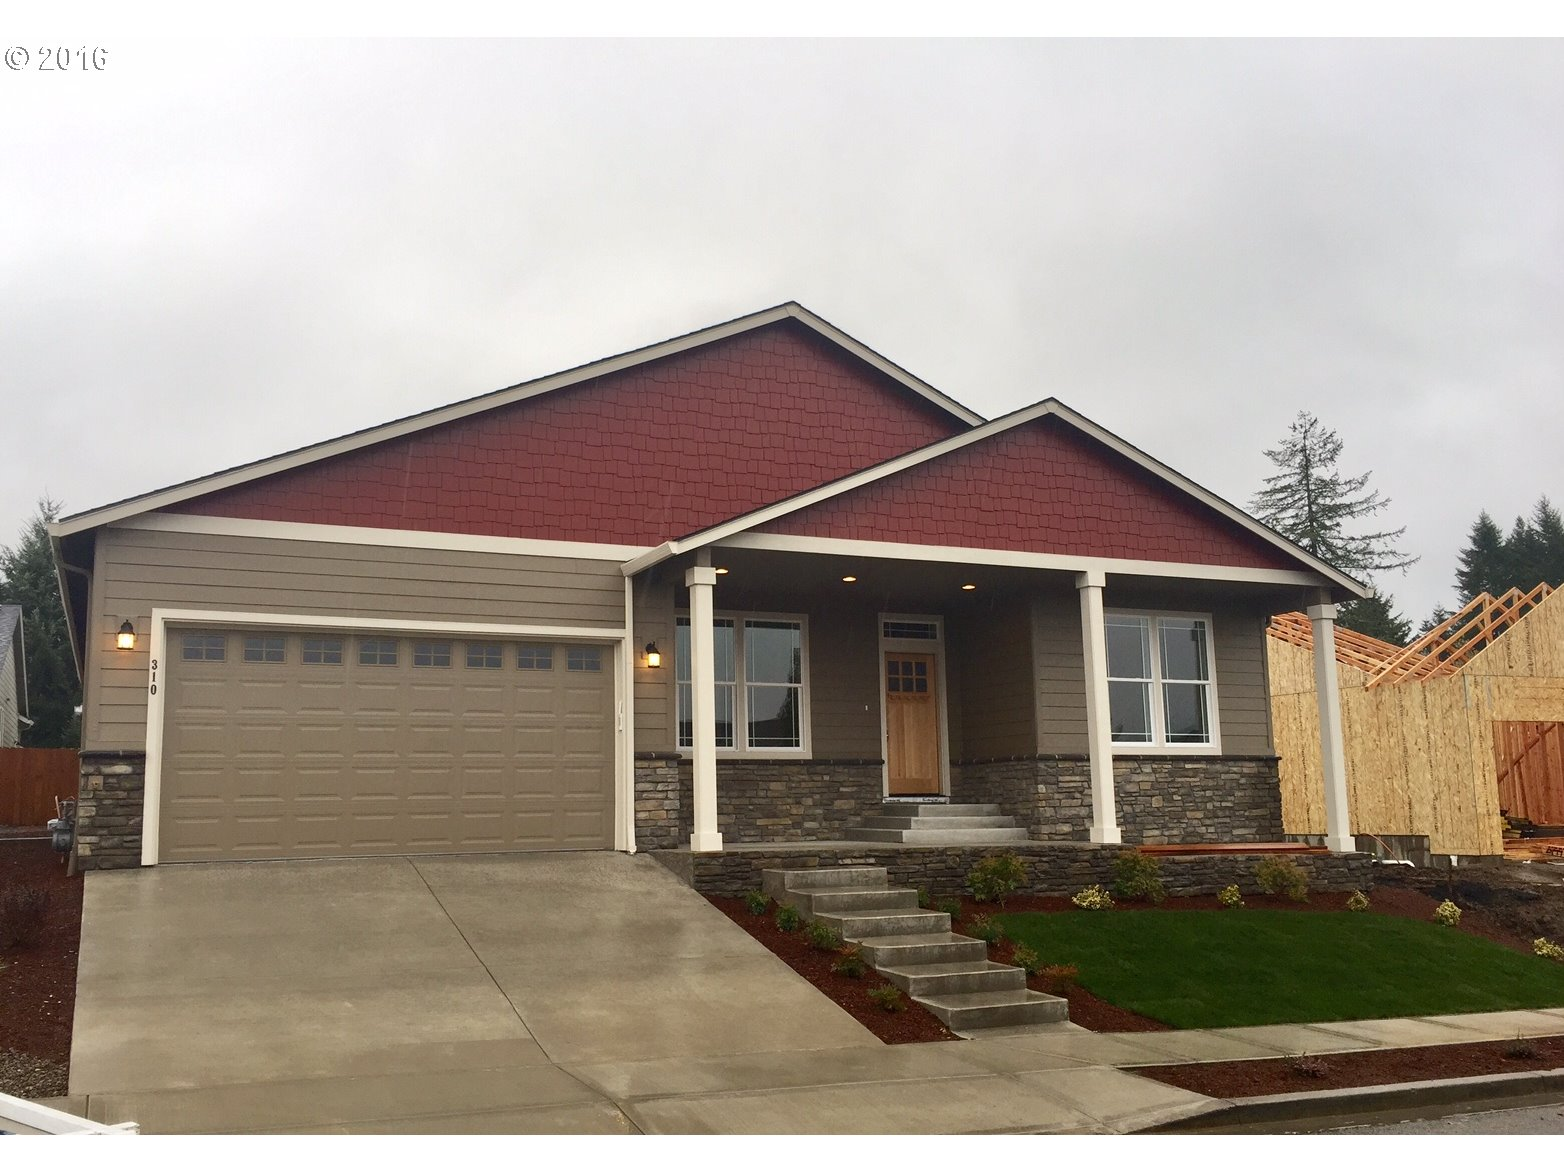 310 NE 17TH ST, Battle Ground, WA 98604